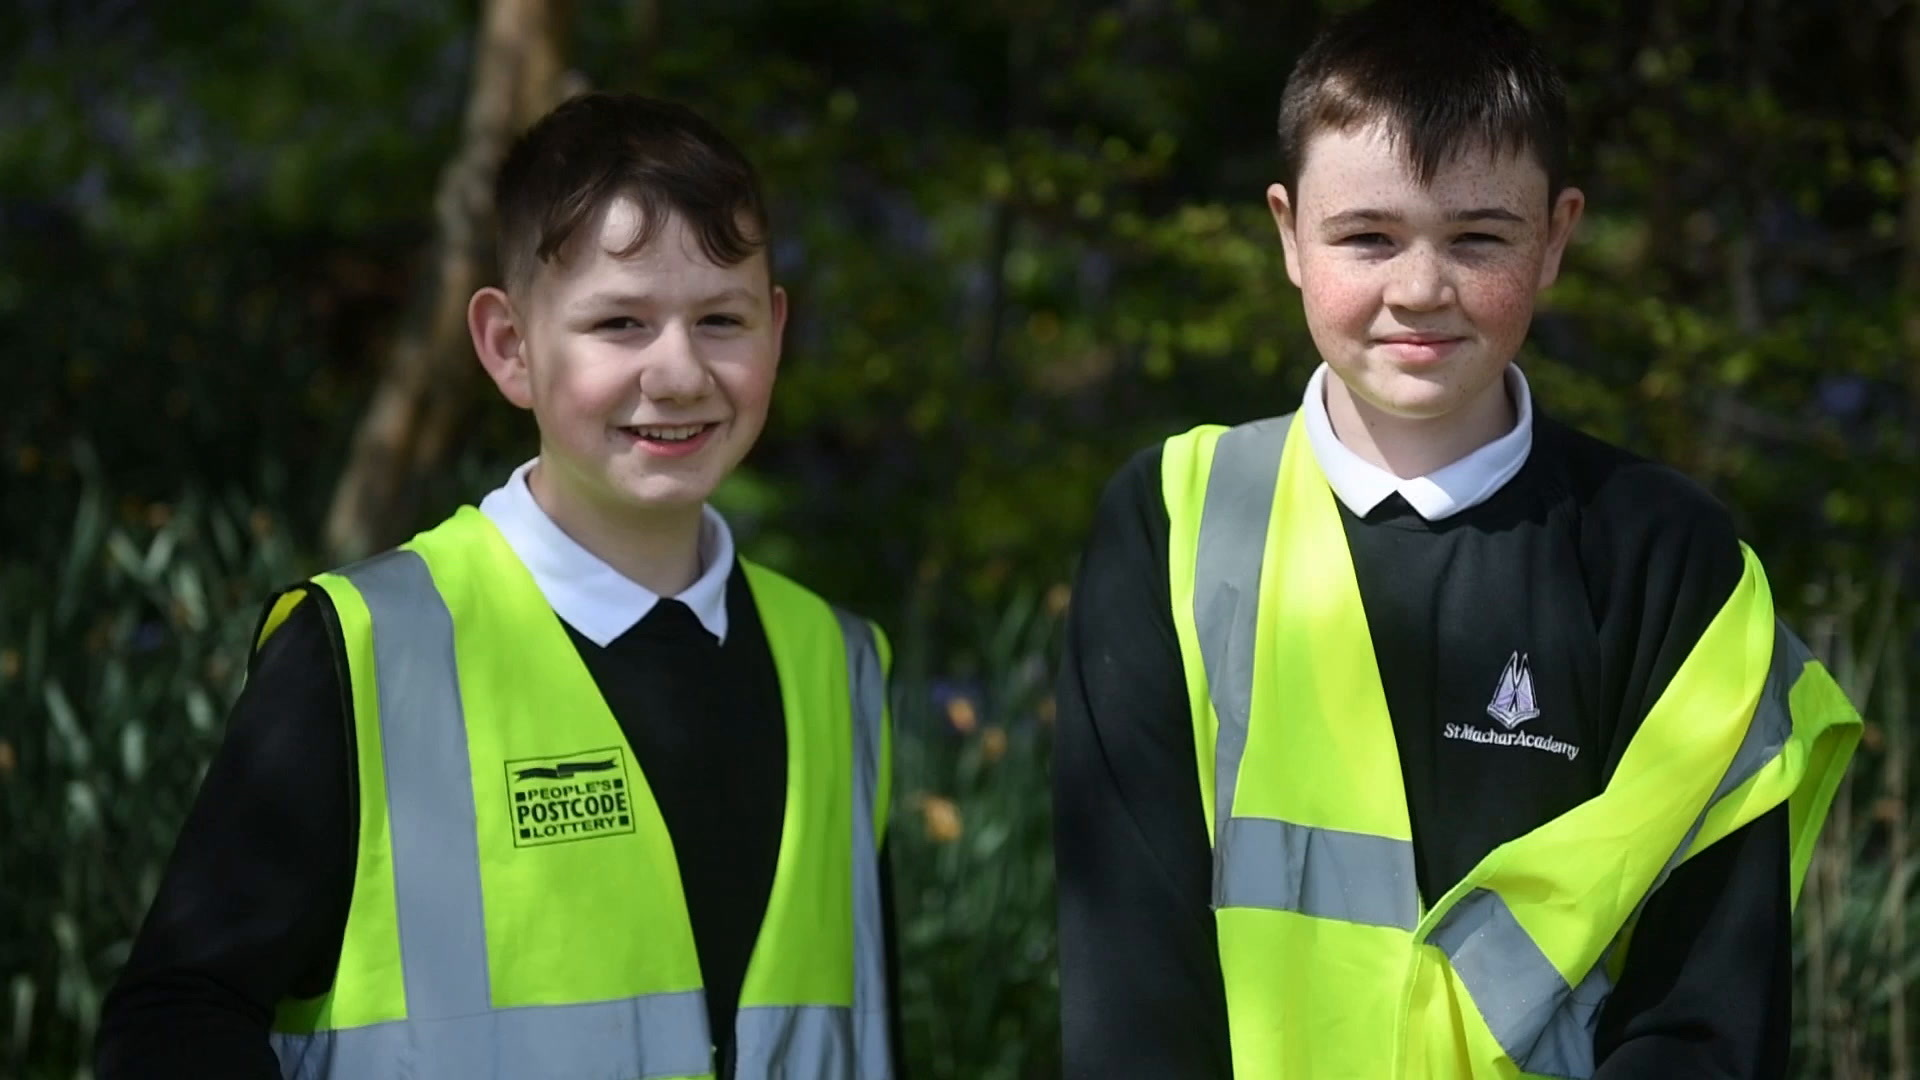 St Machar Academy pupils were involved in the litter pick.